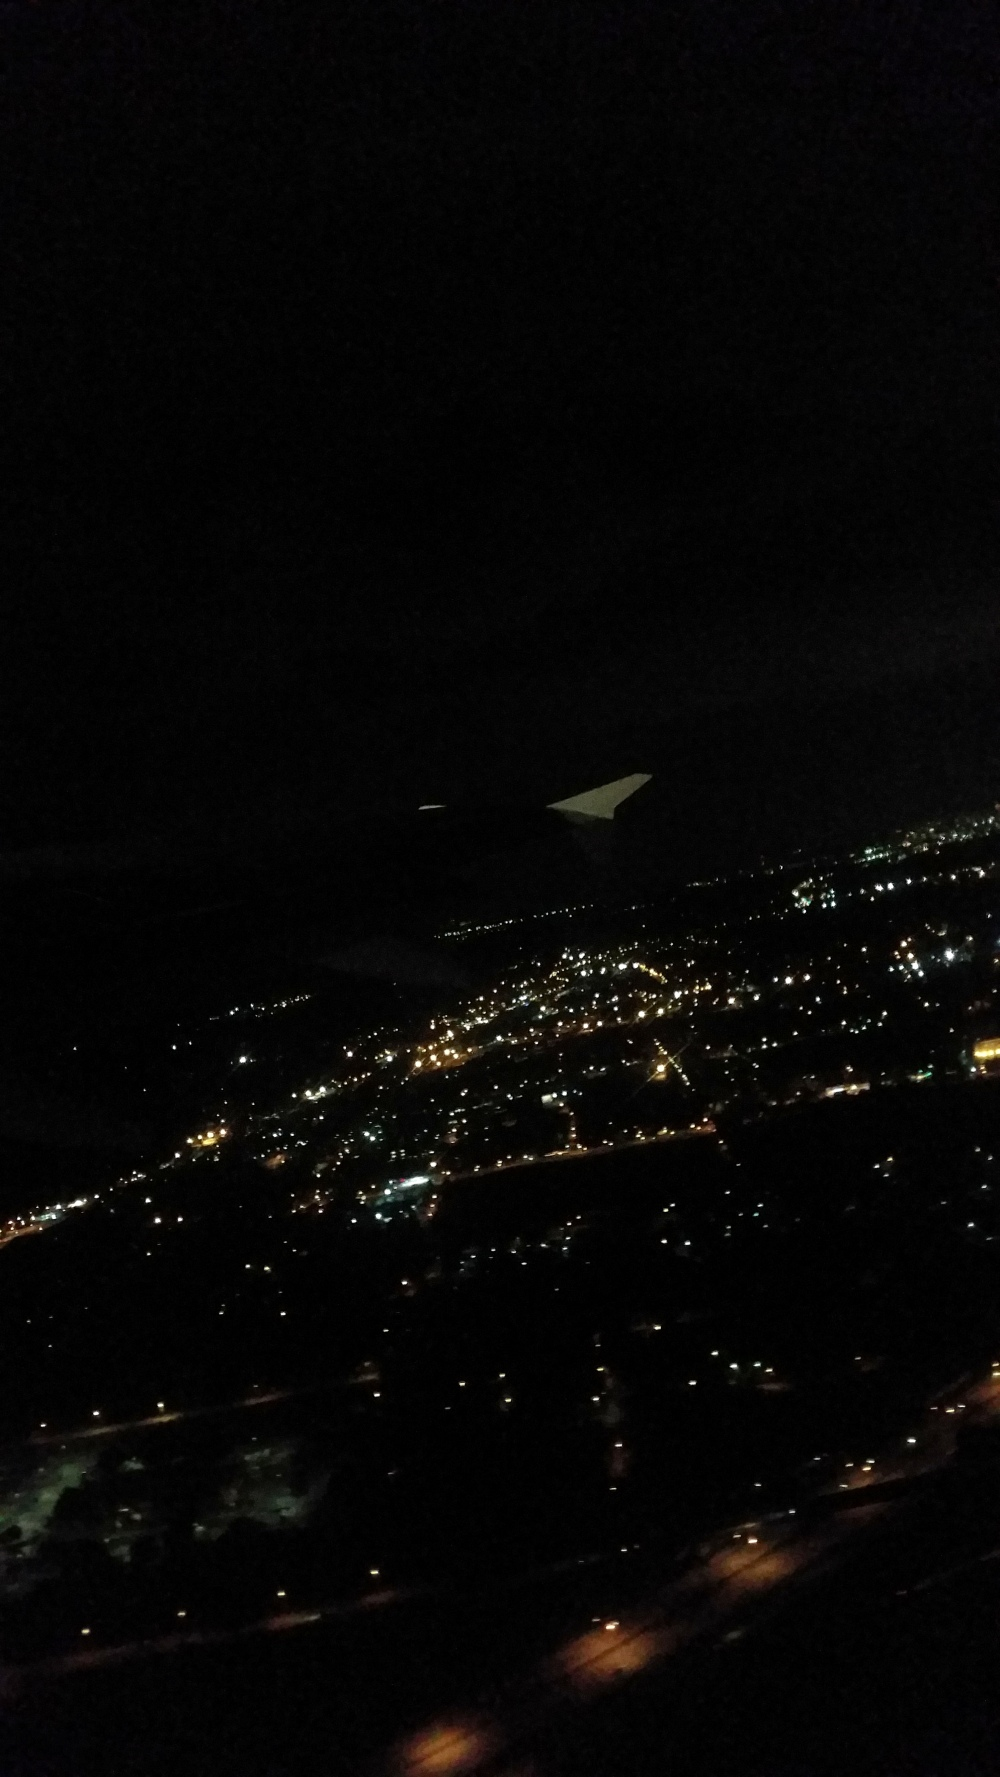 Atlanta City Lights at Take Off